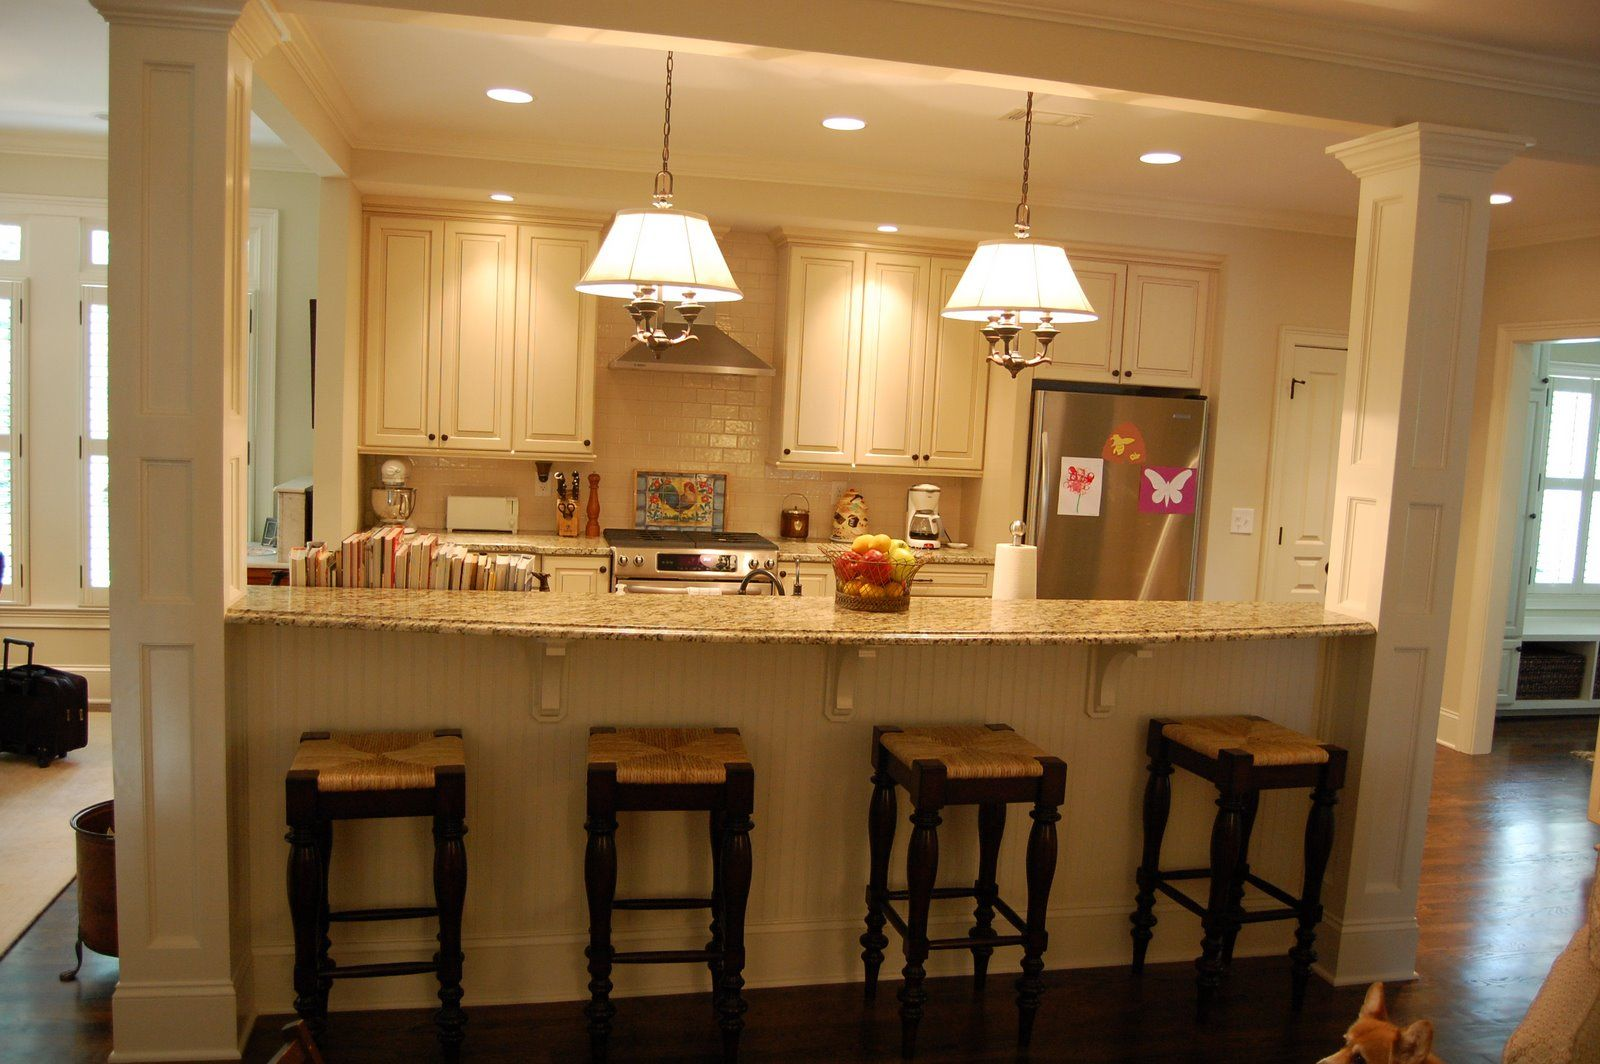 Kitchen Island With Columns columns in kitchen island | kitchen | pinterest | columns